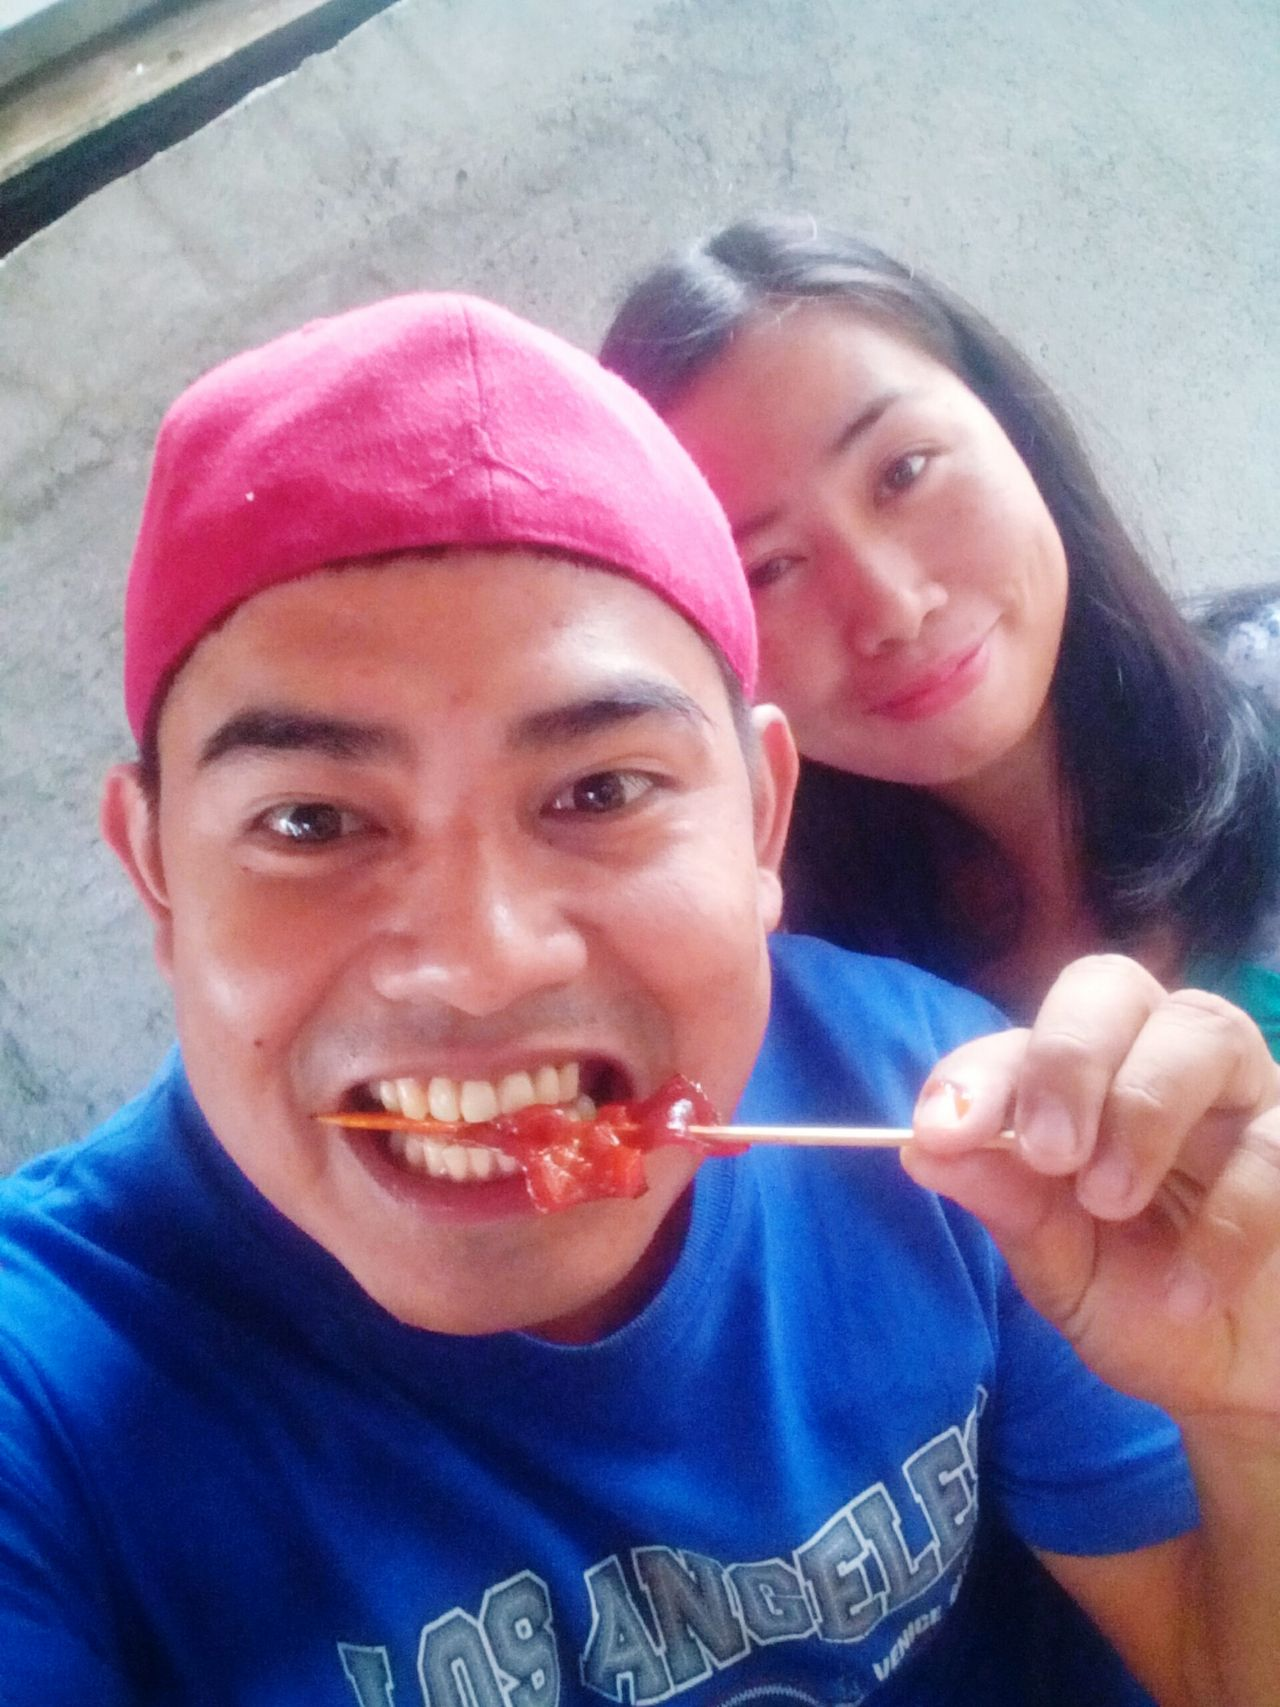 Barbecue BarbecueDay Barbecue Eat Love Eating Barbecue Eating Babrbecue With My Girlfriend Capturing Moments  Taking Photos Celebrating Love! Love Is In The Air Me And My Girlfriend  My Girl Red Cap Street Foods Streetphotography First Eyeem Photo Happy People Love